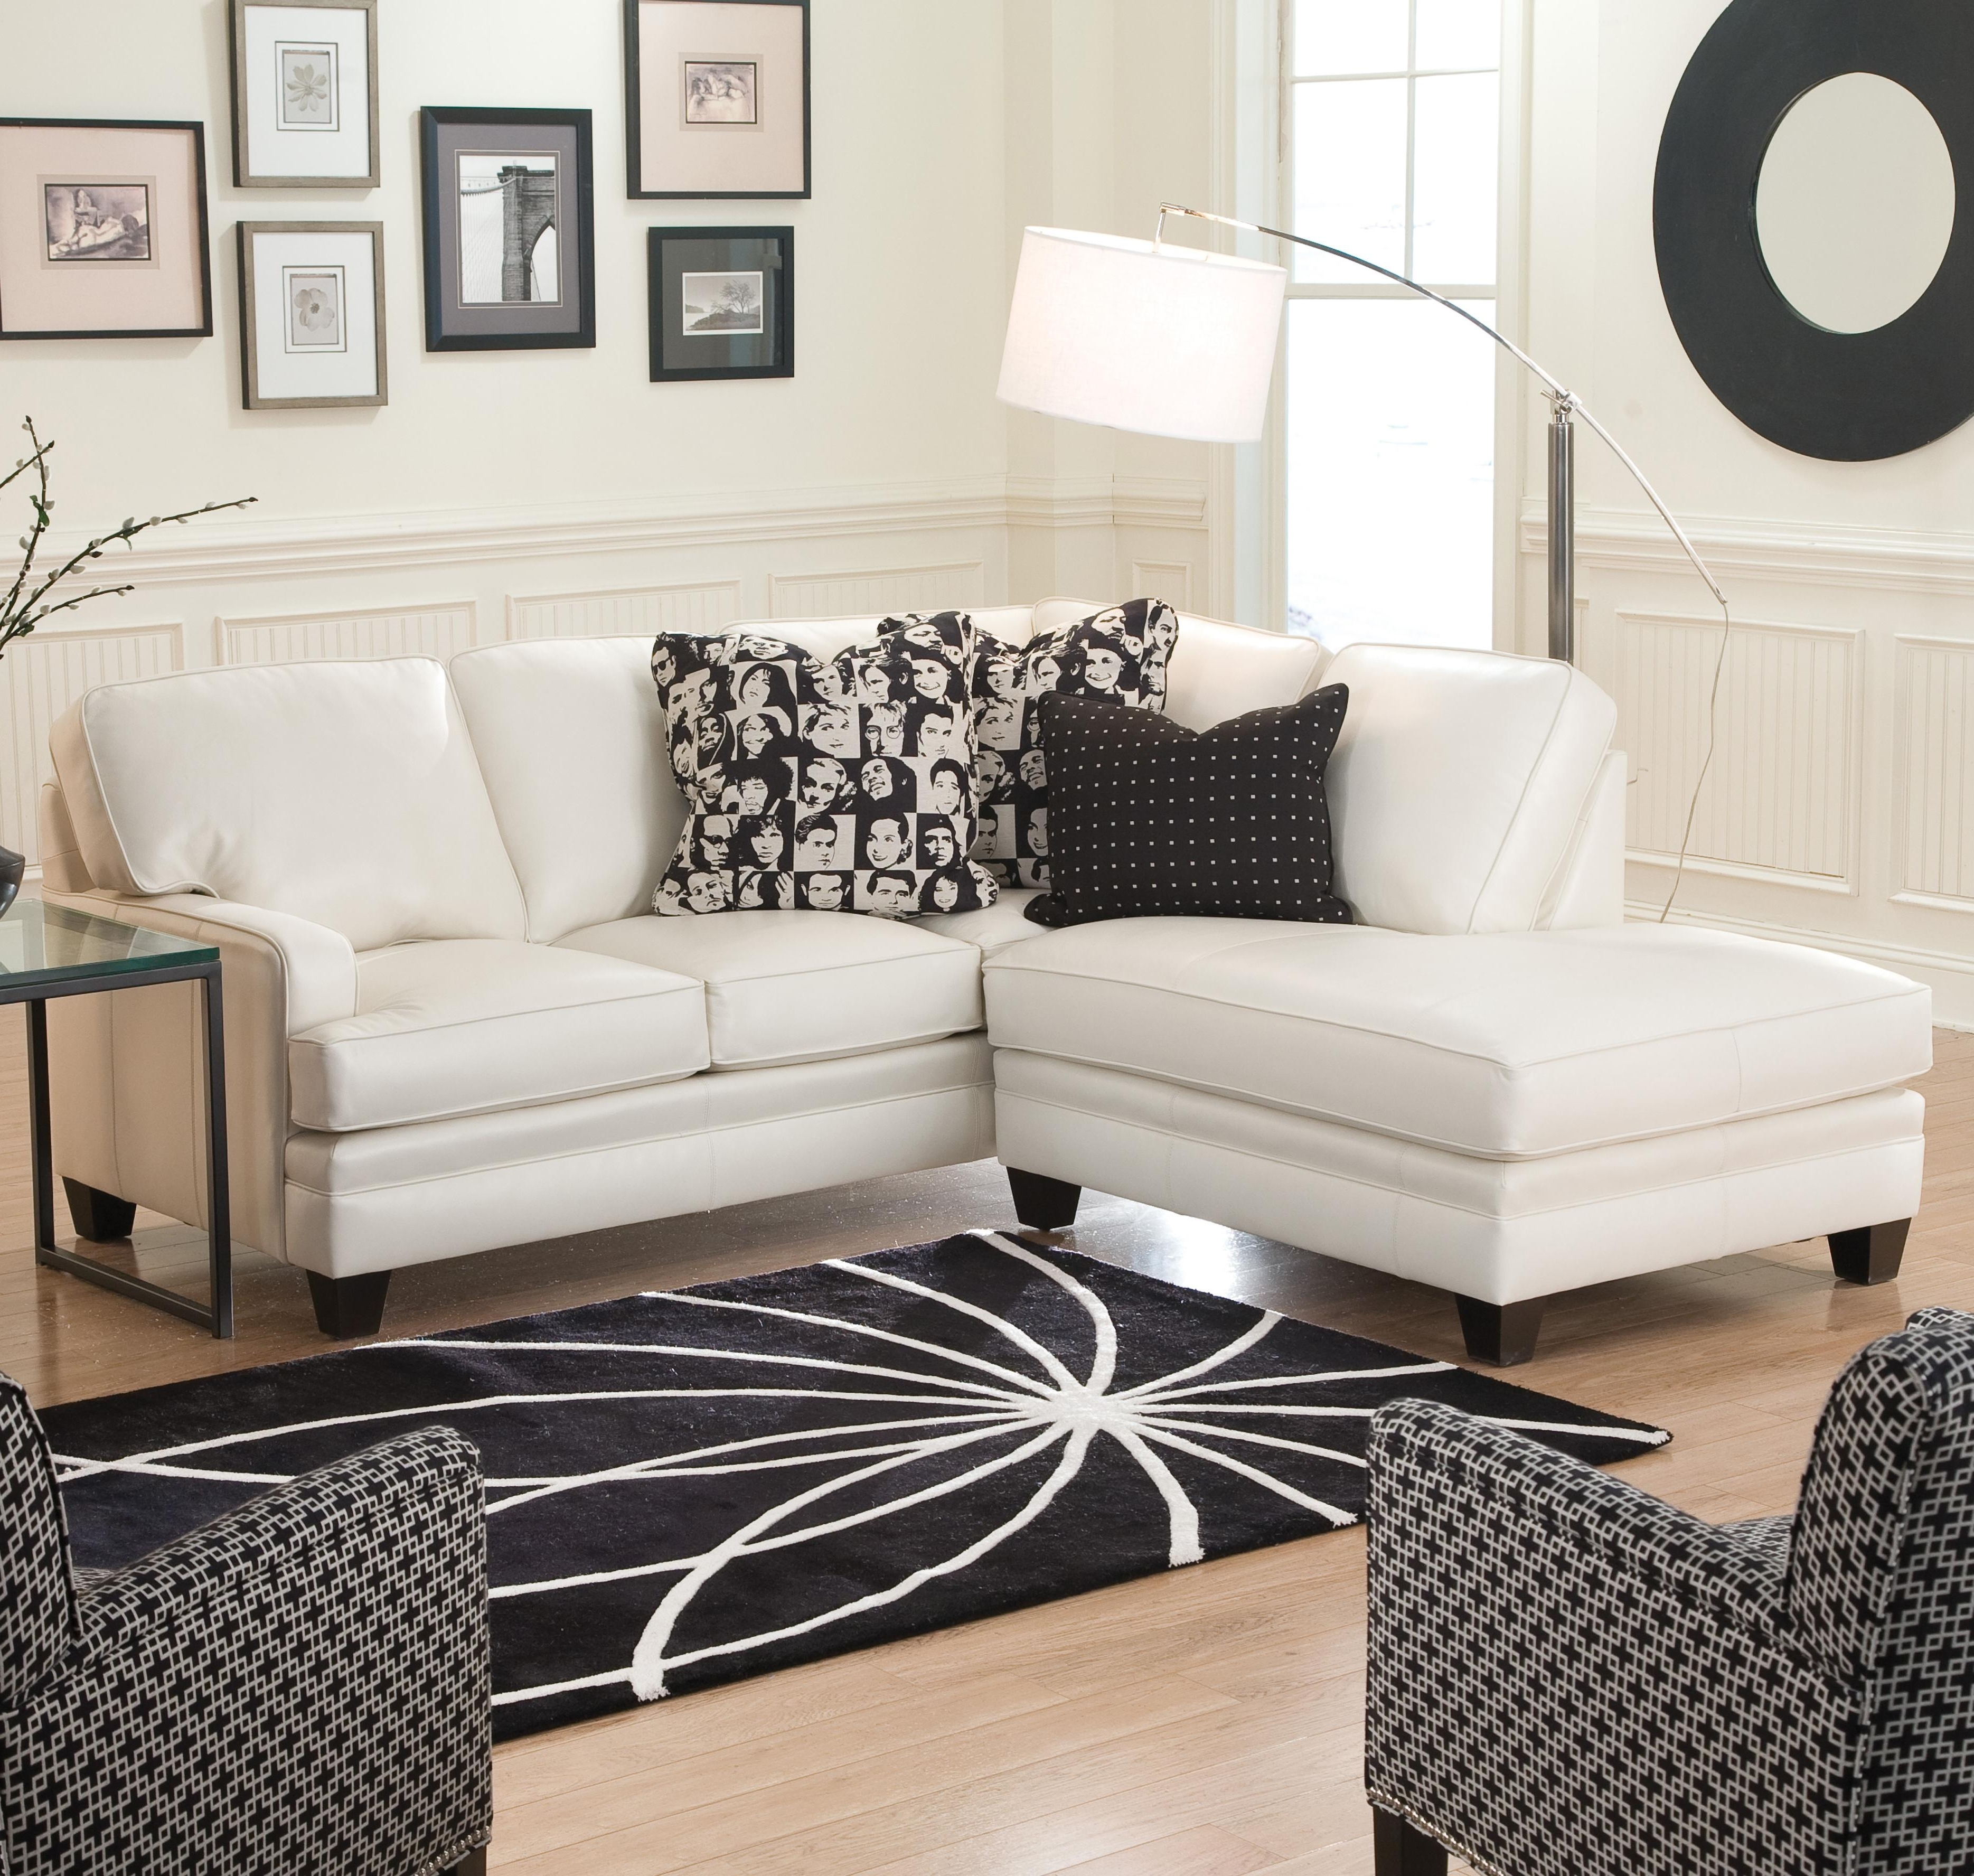 Couches Design New In Impressive Reversible Sectional Sofa Chaise Throughout Fashionable Affordable Tufted Sofas (View 6 of 20)